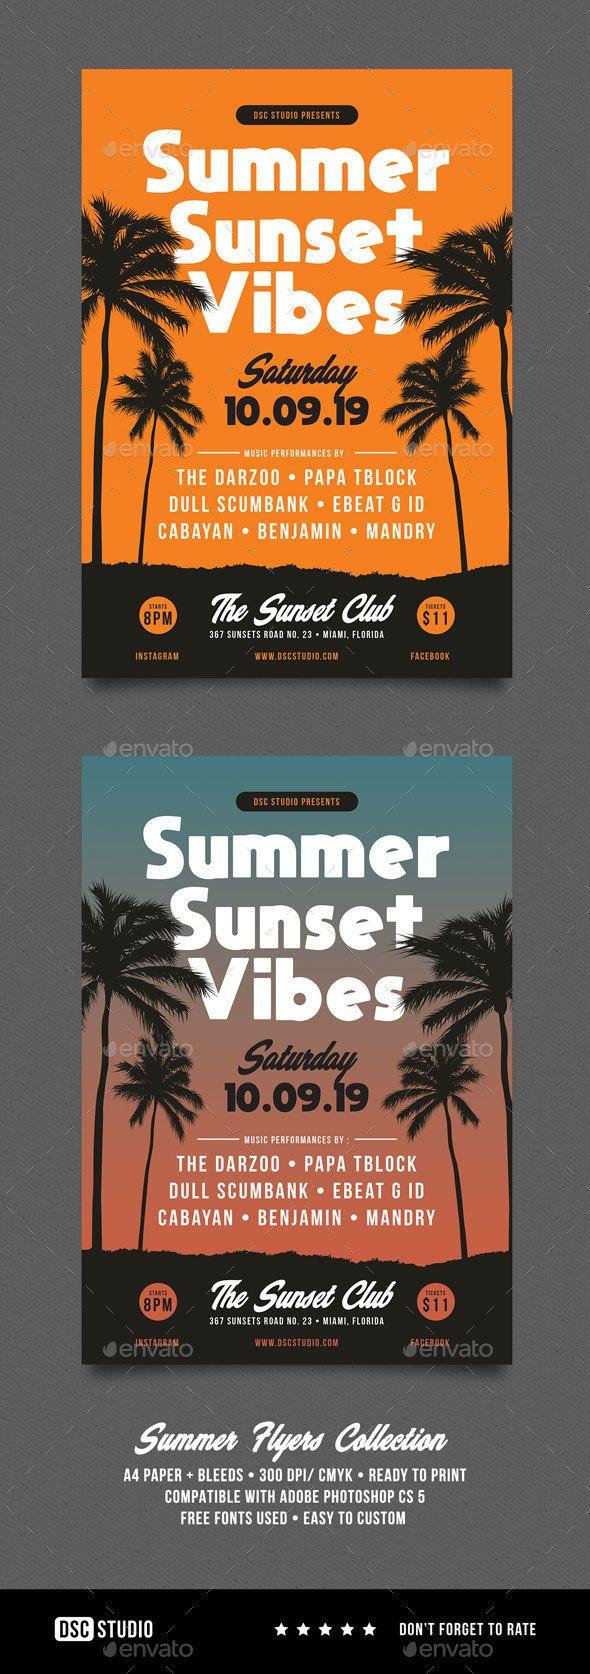 summer sunset vibes party flyer events flyers summer flyer